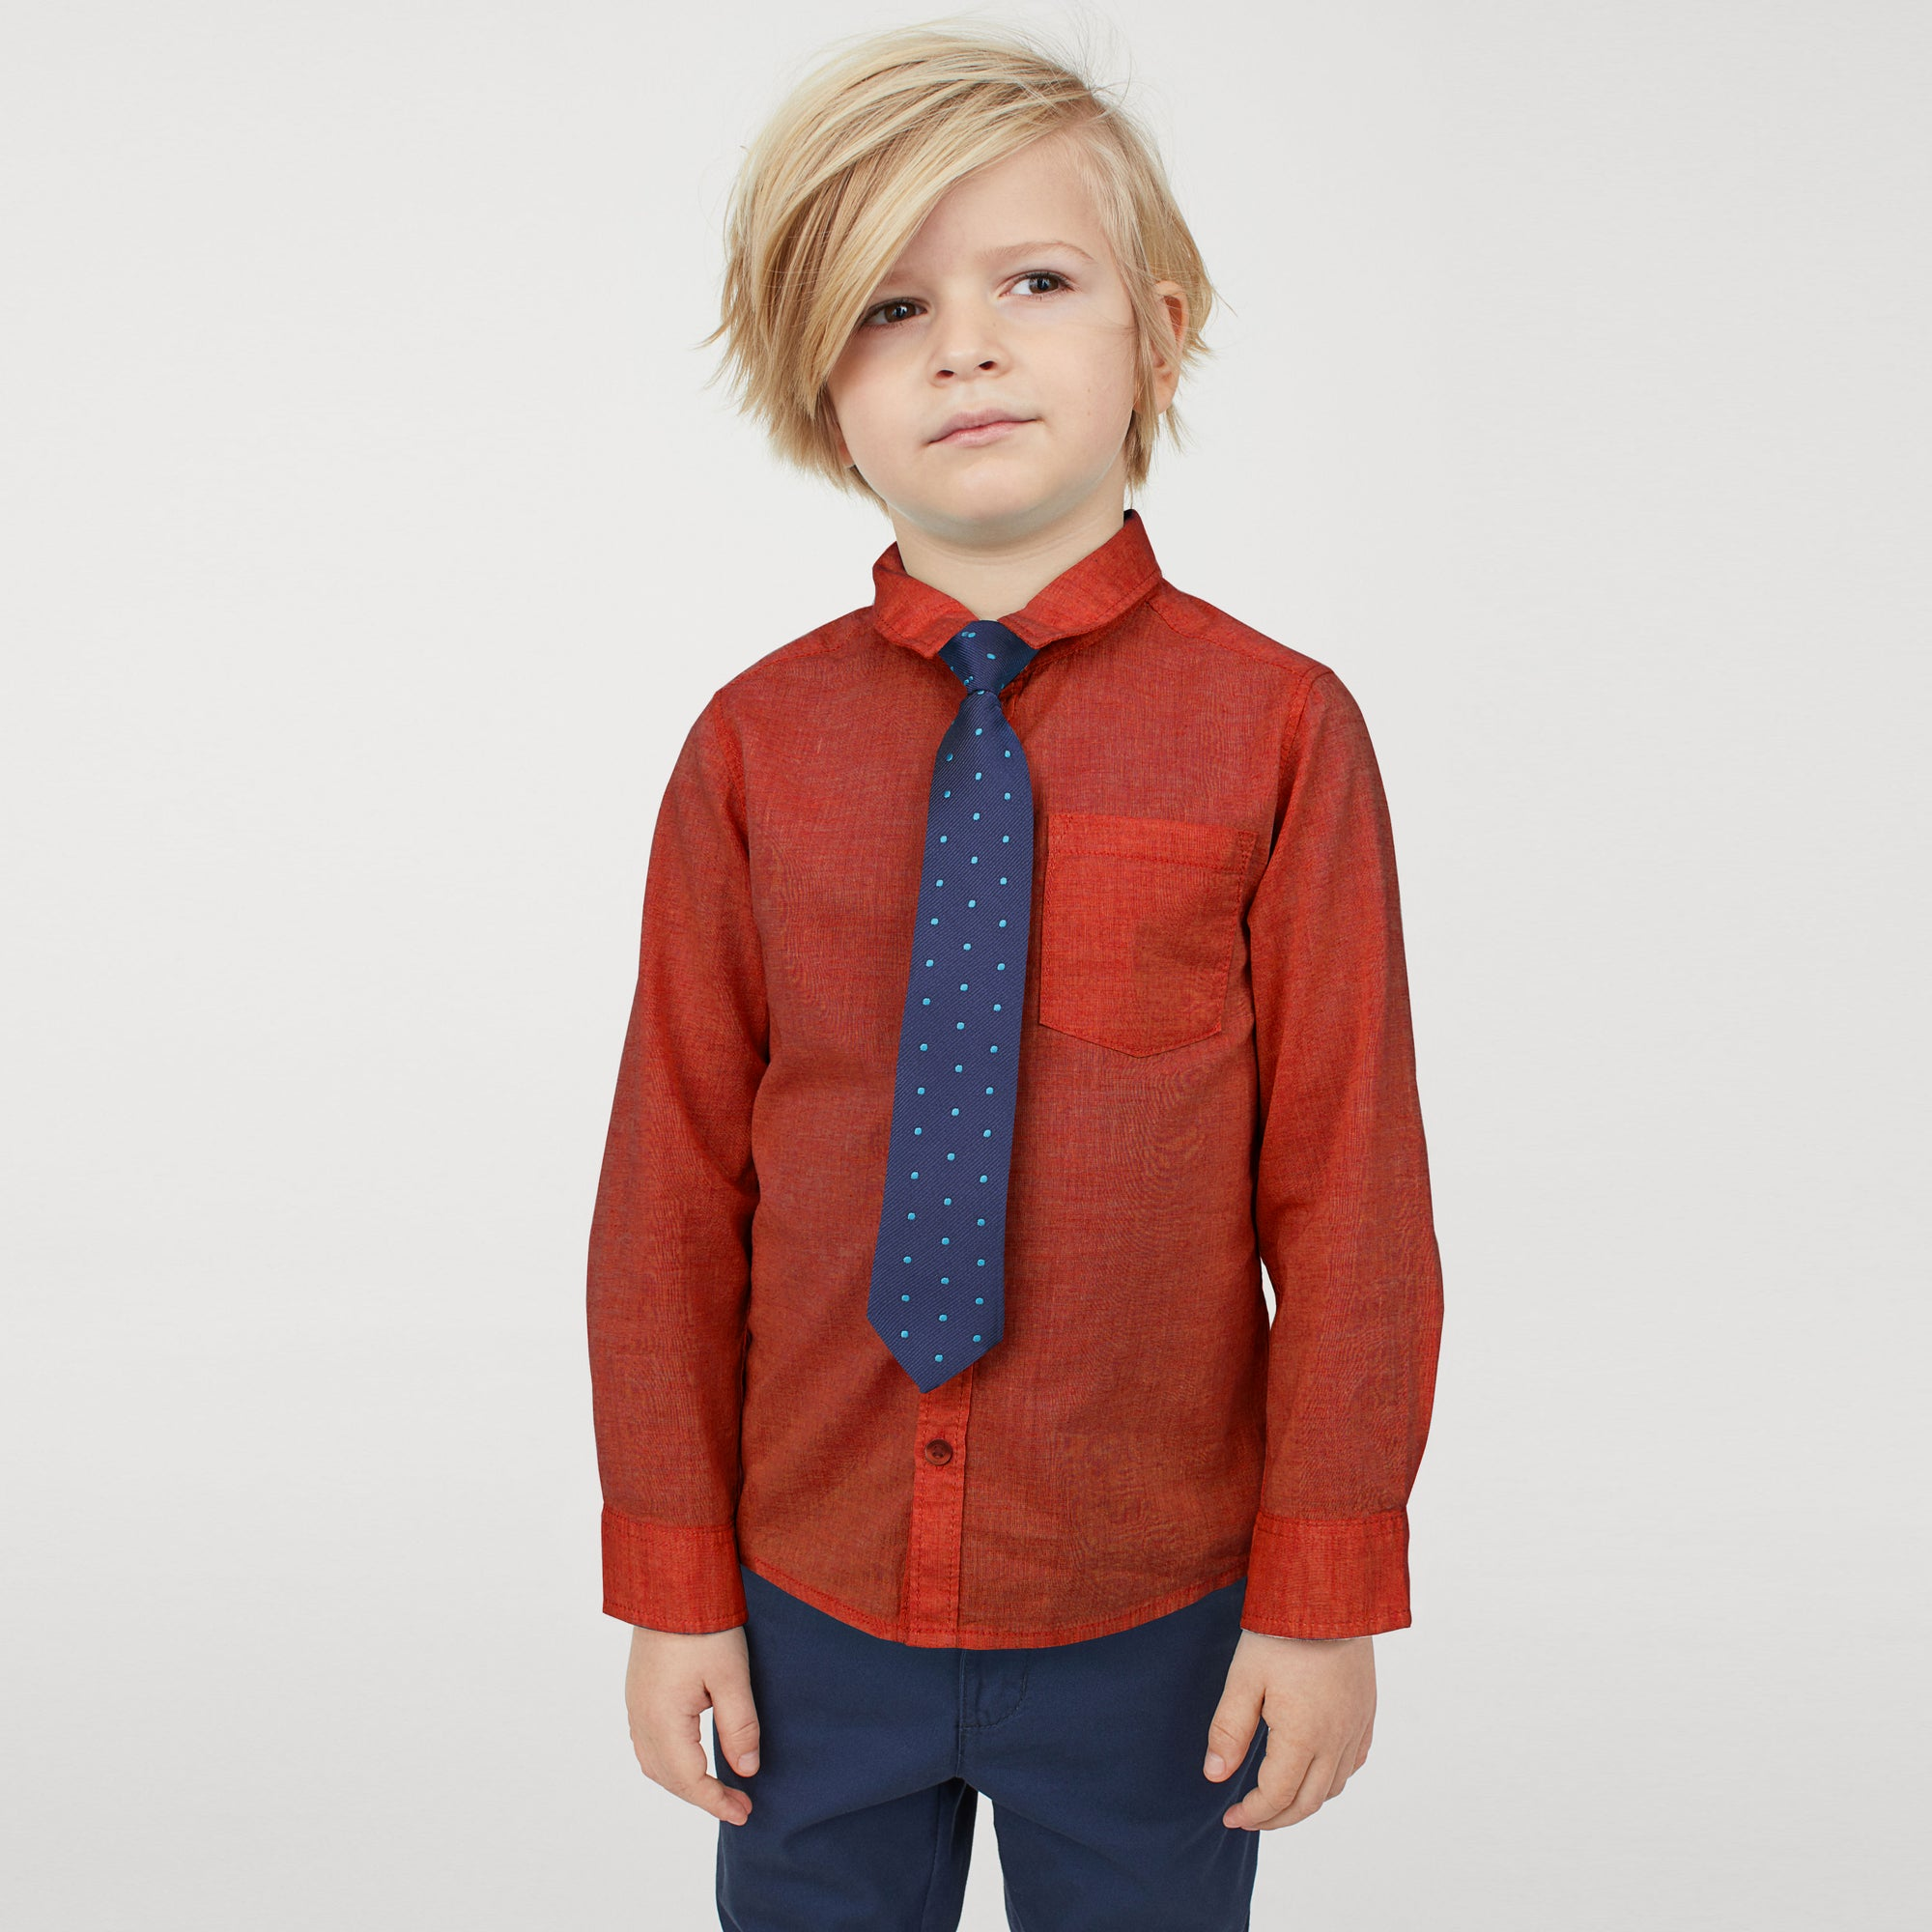 Karat Button Down Casual Shirt For Boys-Dark Orange Melange-NA8628